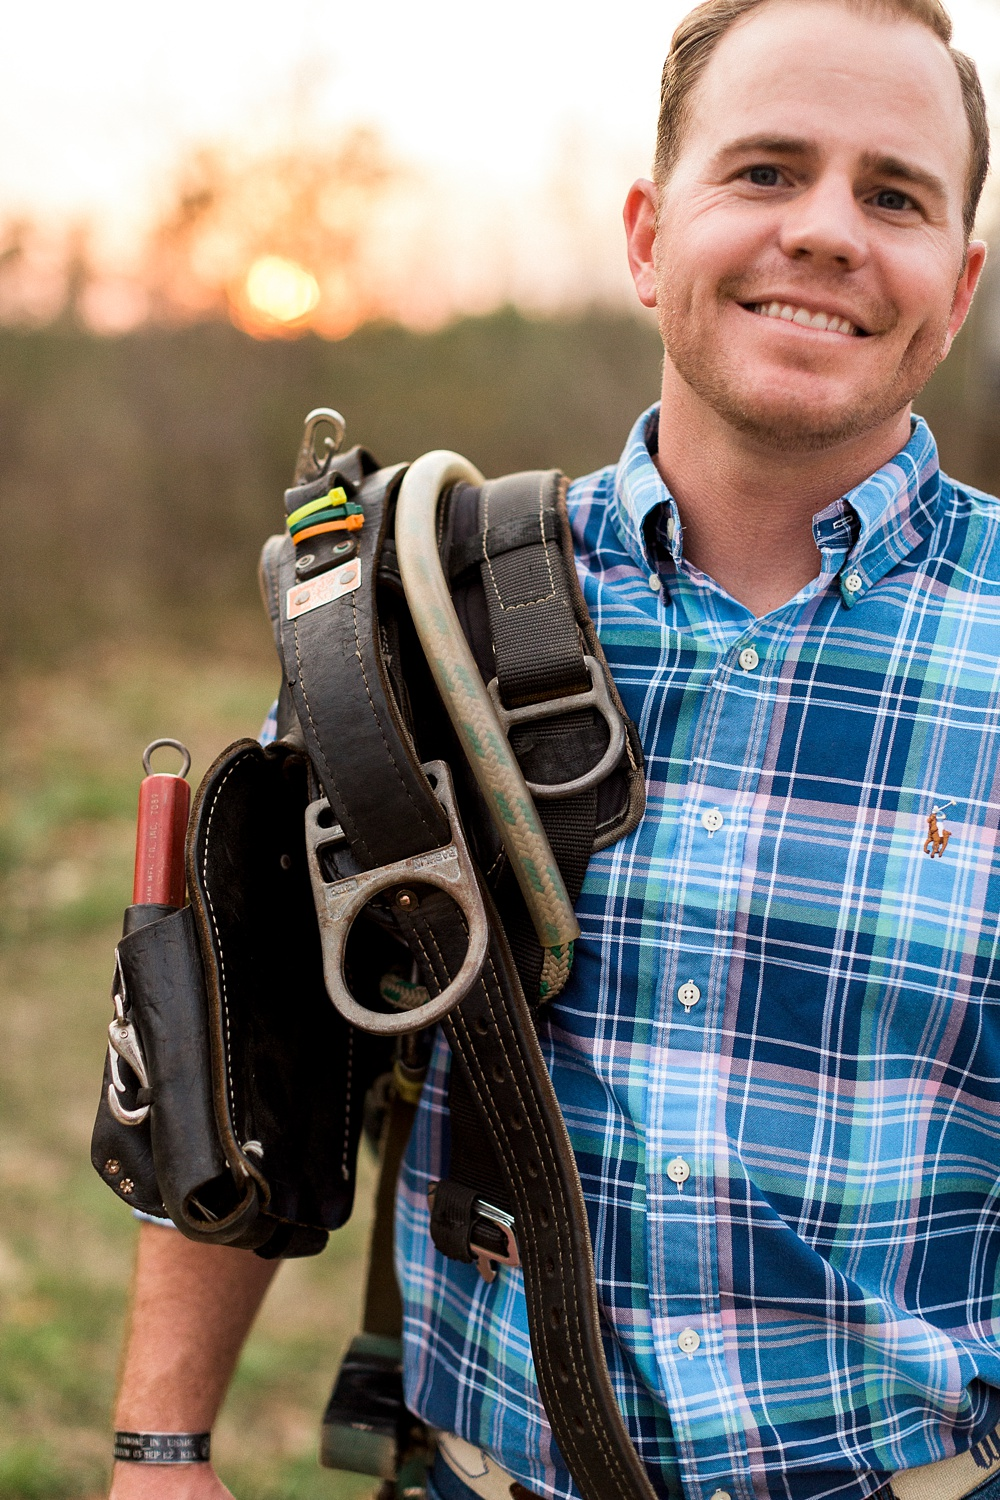 lineman holds his gear over his shoulder